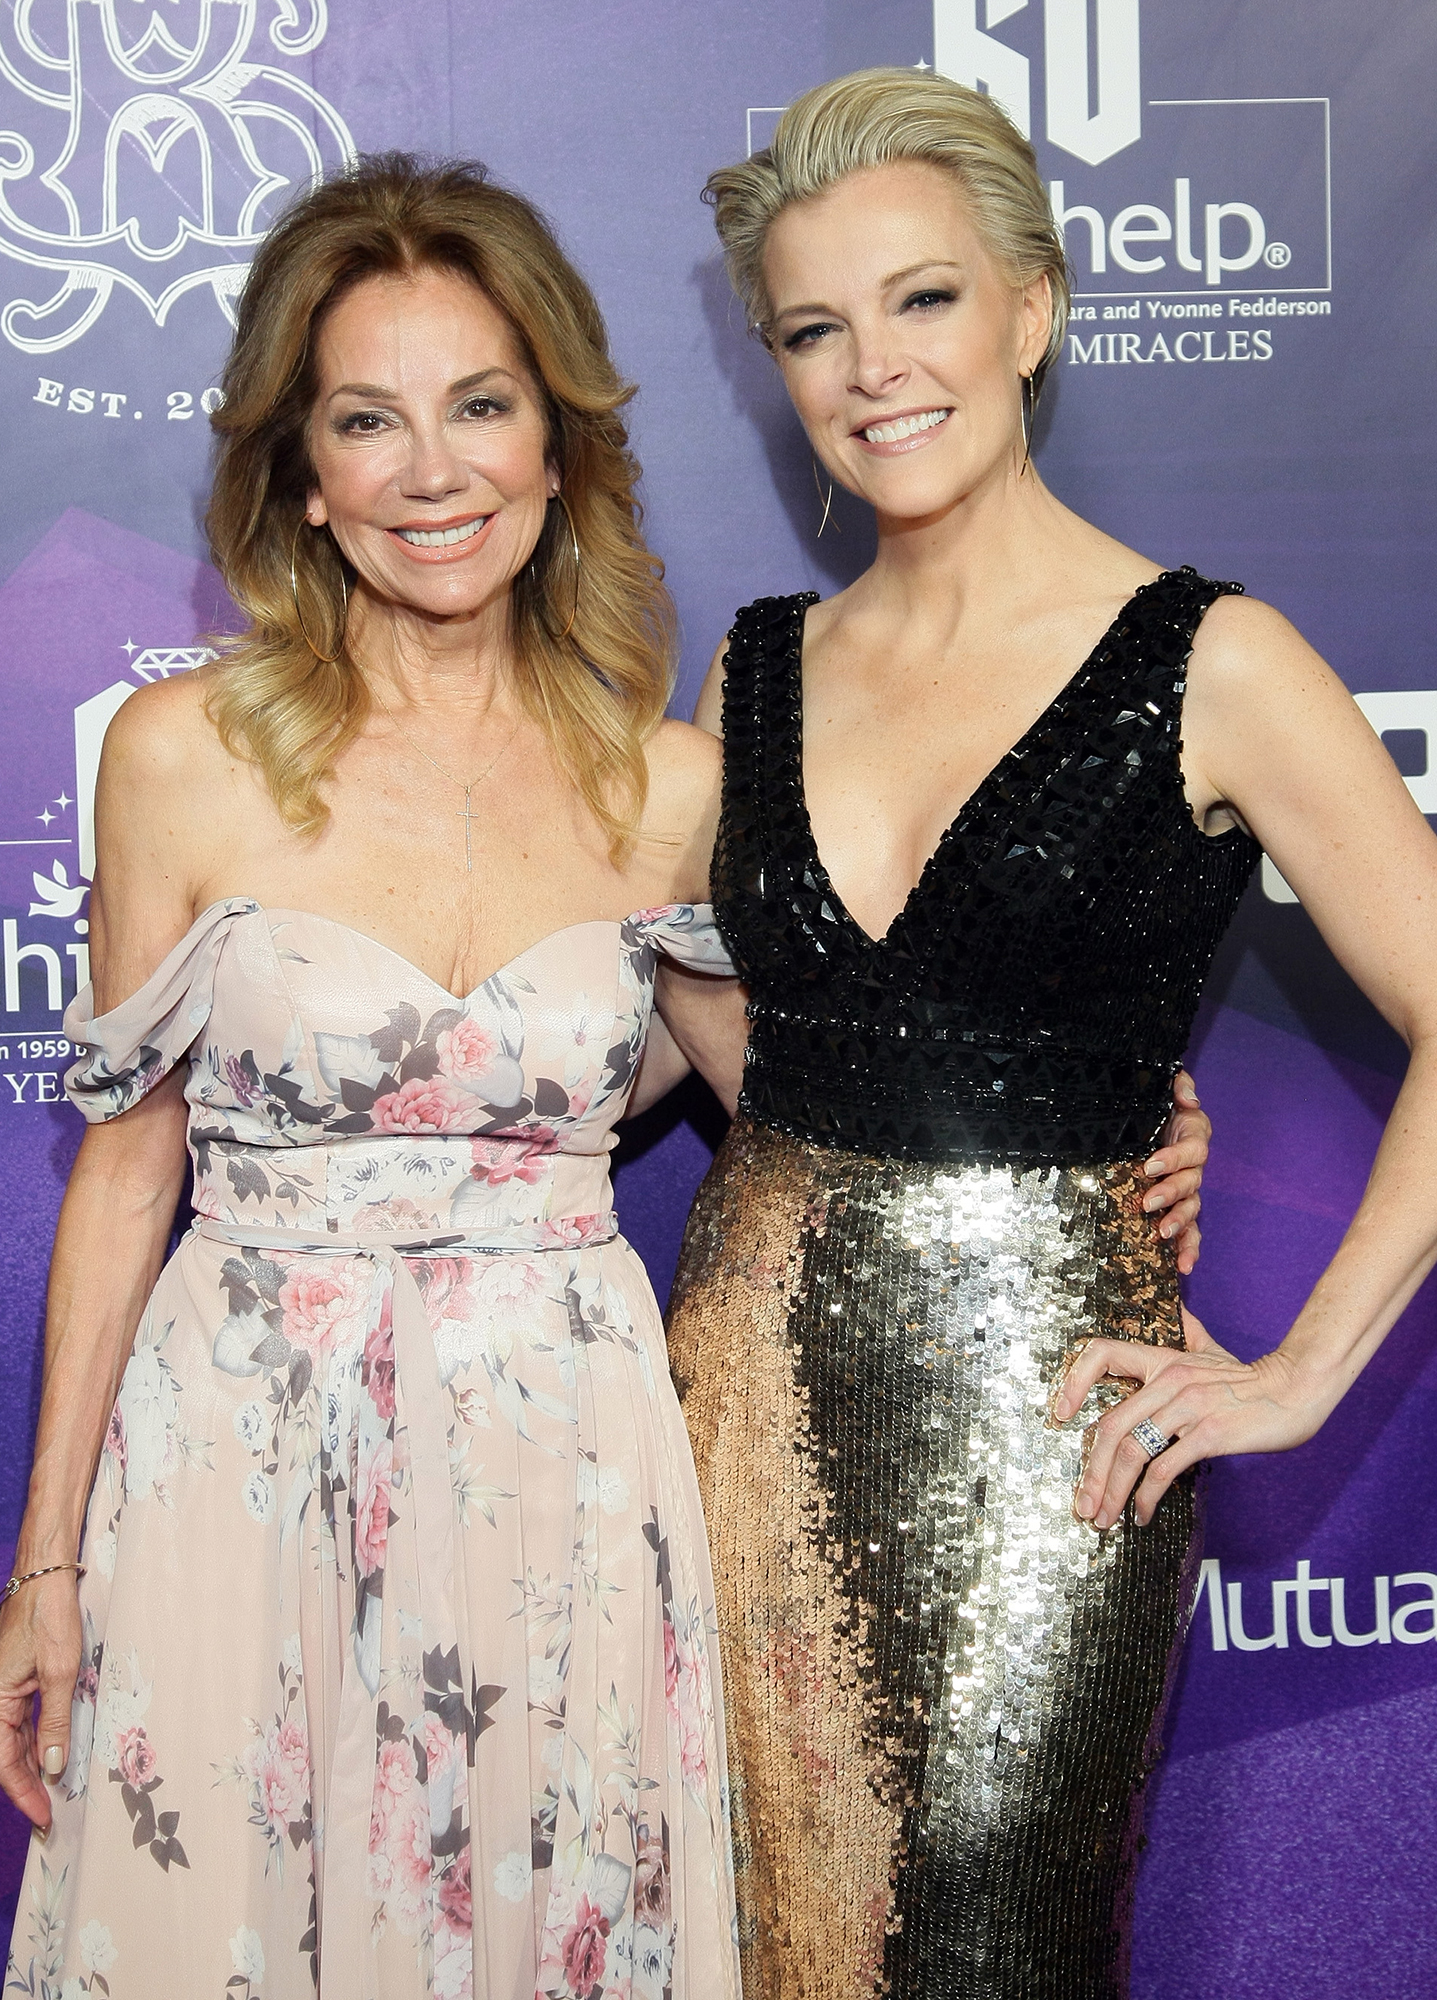 Kathie Lee Gifford and Megyn Kelly Reunite After Firing - Kathie Lee Gifford and Megyn Kelly pose for photos on the red carpet during the Childhelp's 15th annual Drive The Dream Gala at The Phoenician Resort on February 02, 2019 in Scottsdale, Arizona.